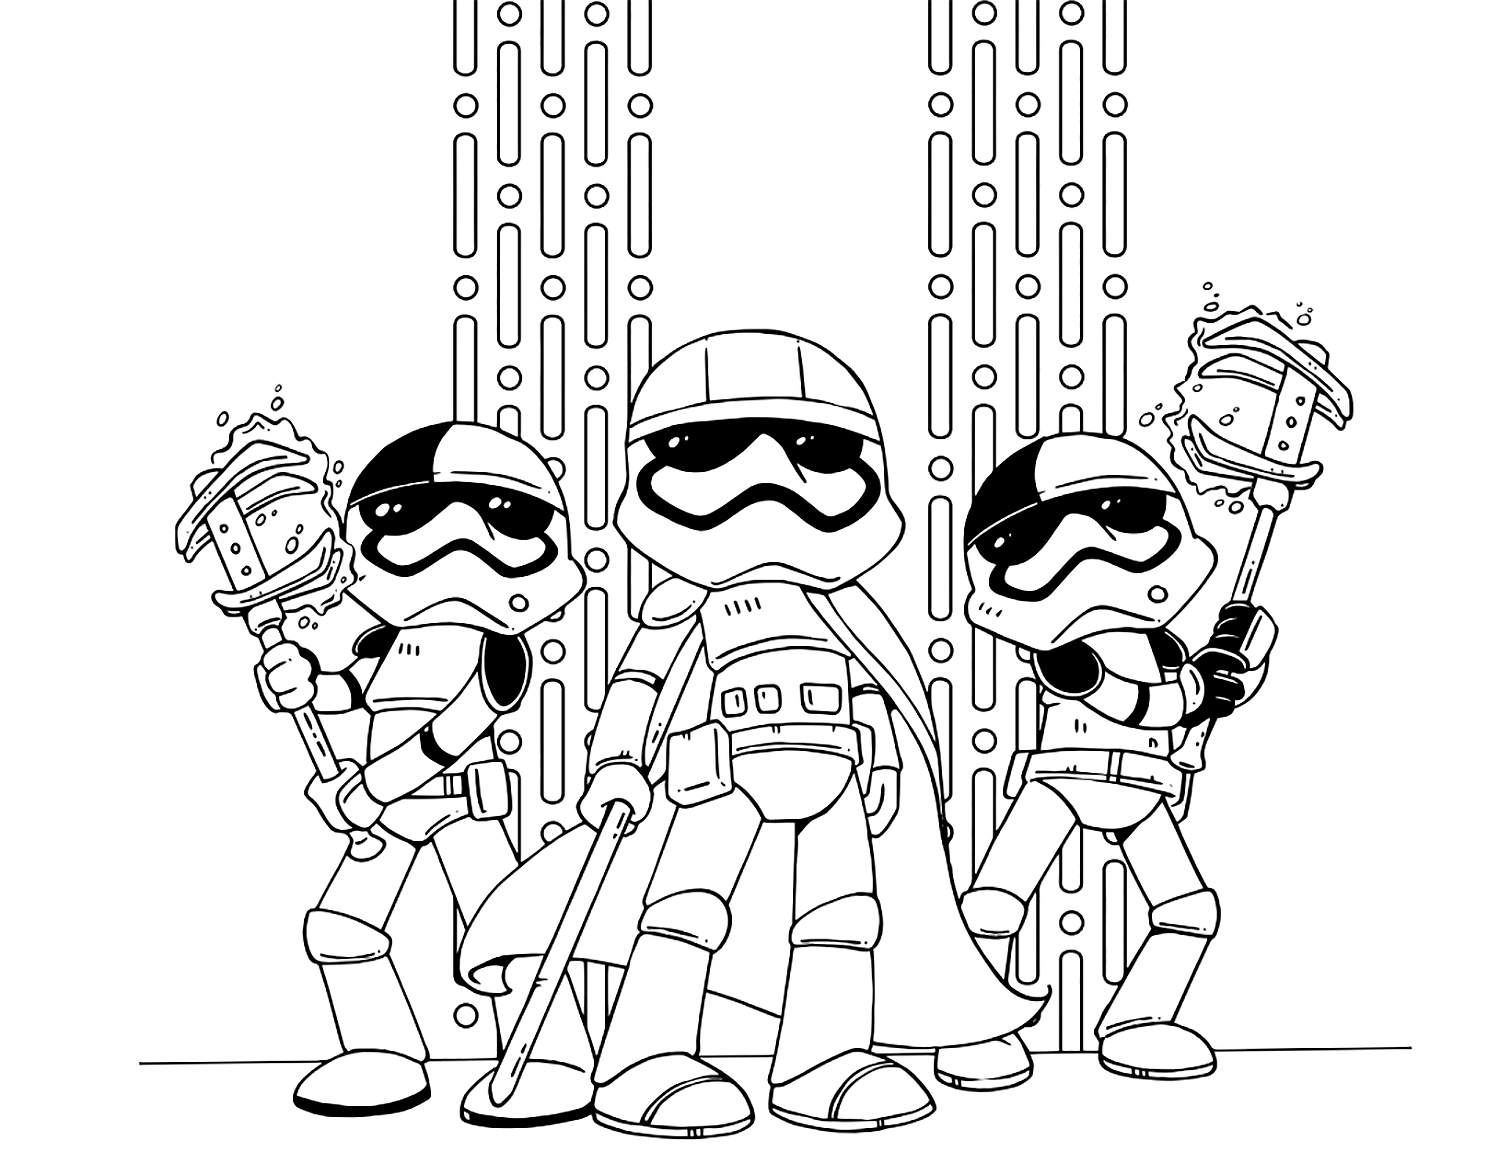 star wars the last jedi cute coloring pages - Cute Coloring Pages